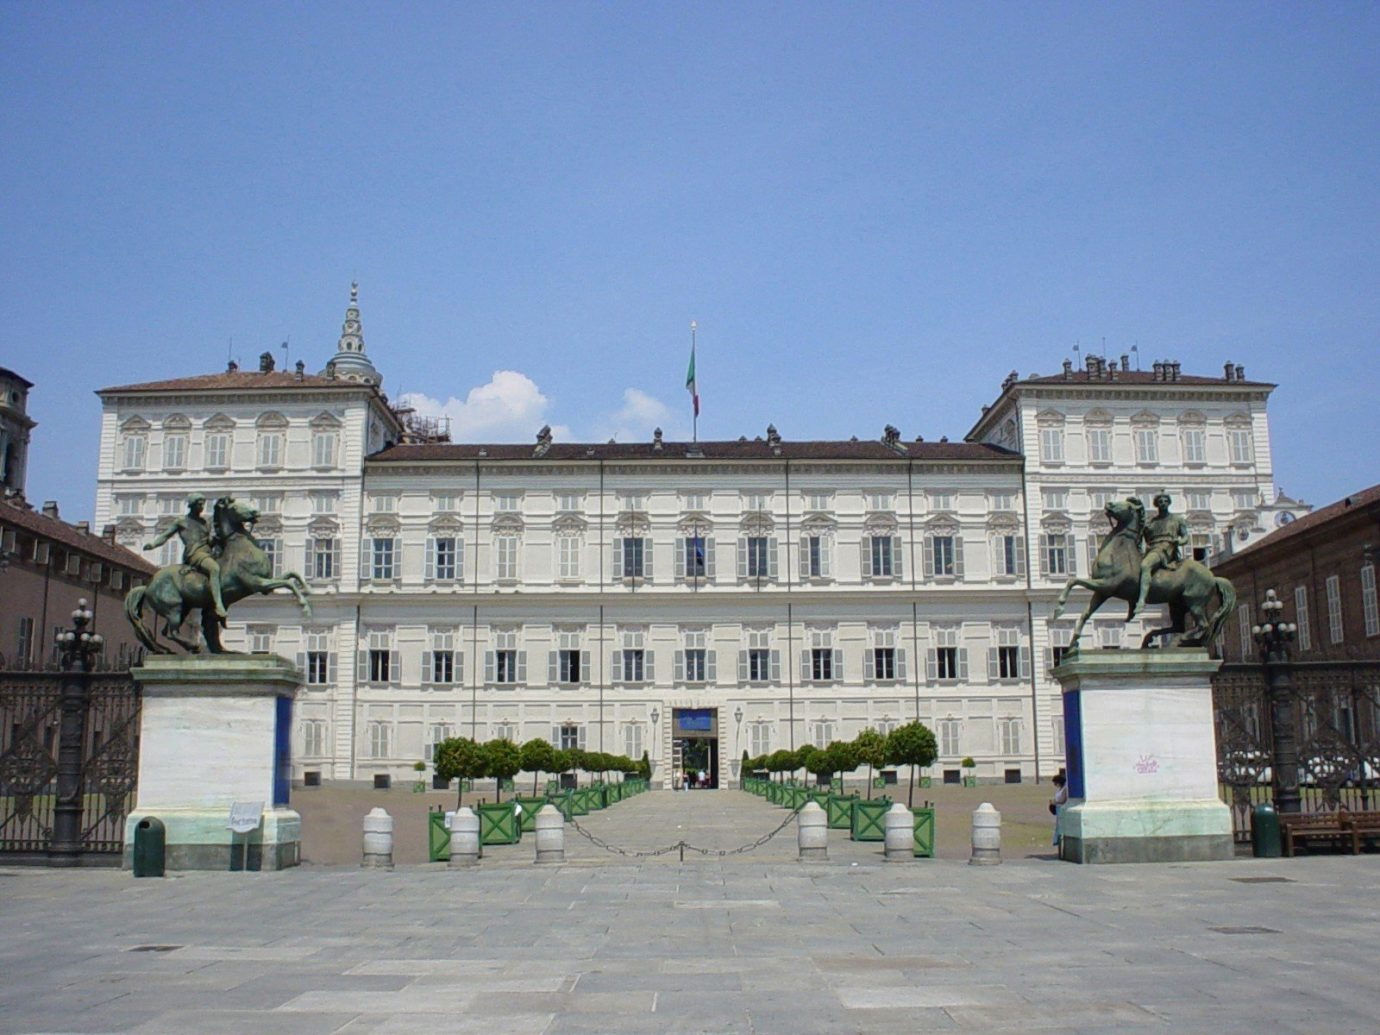 Italy Trip Ideas outdoor sky palace landmark building plaza château town square government building classical architecture estate stately home facade presidential palace official residence City seat of local government historic site government mansion square